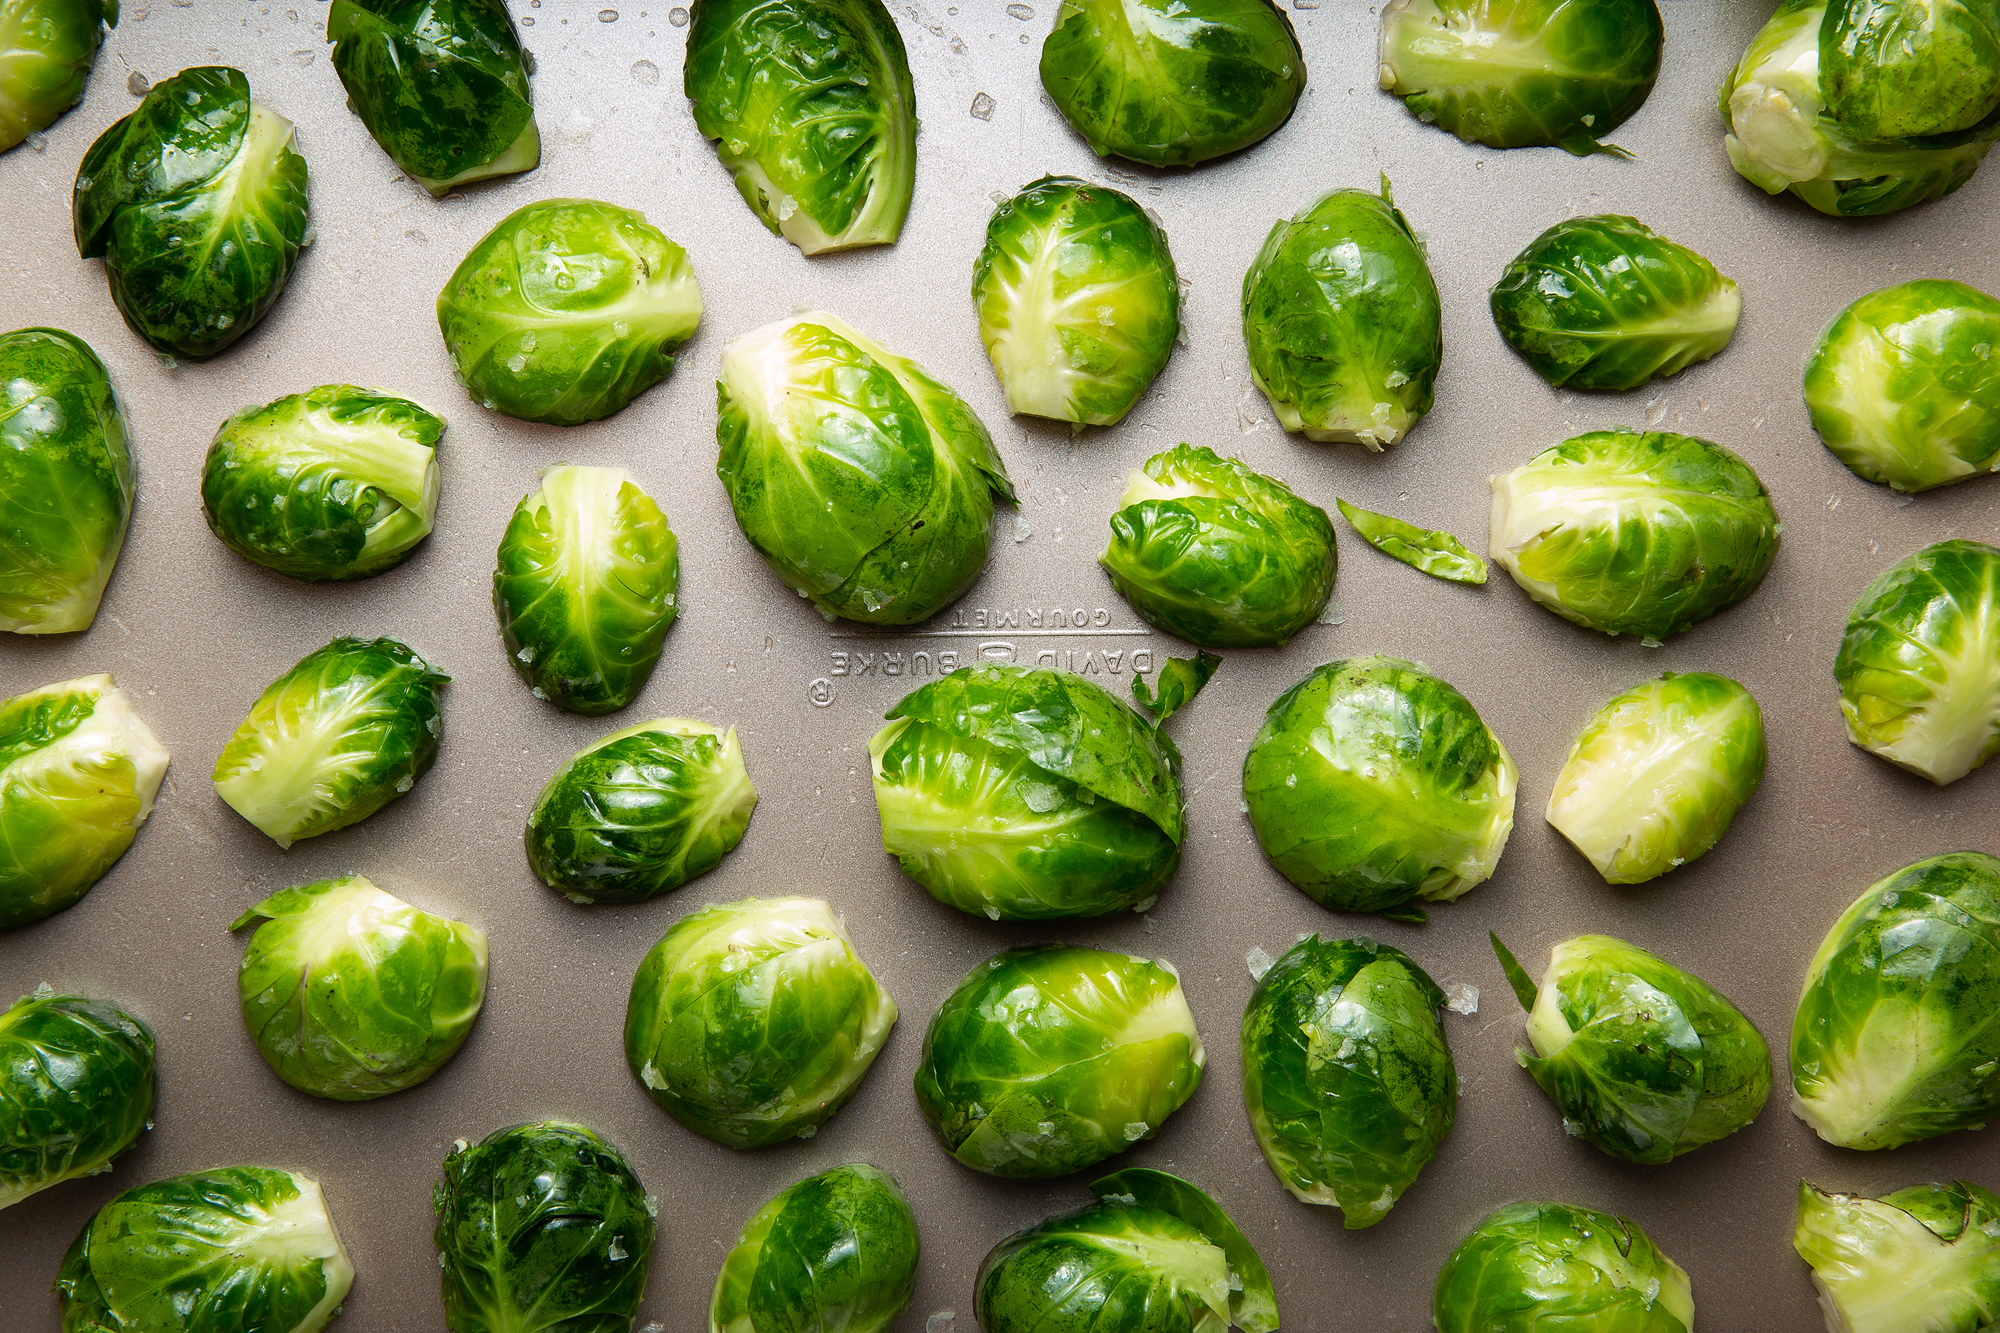 Oven Roasted Brussel Sprouts with Olive Oil and Salt